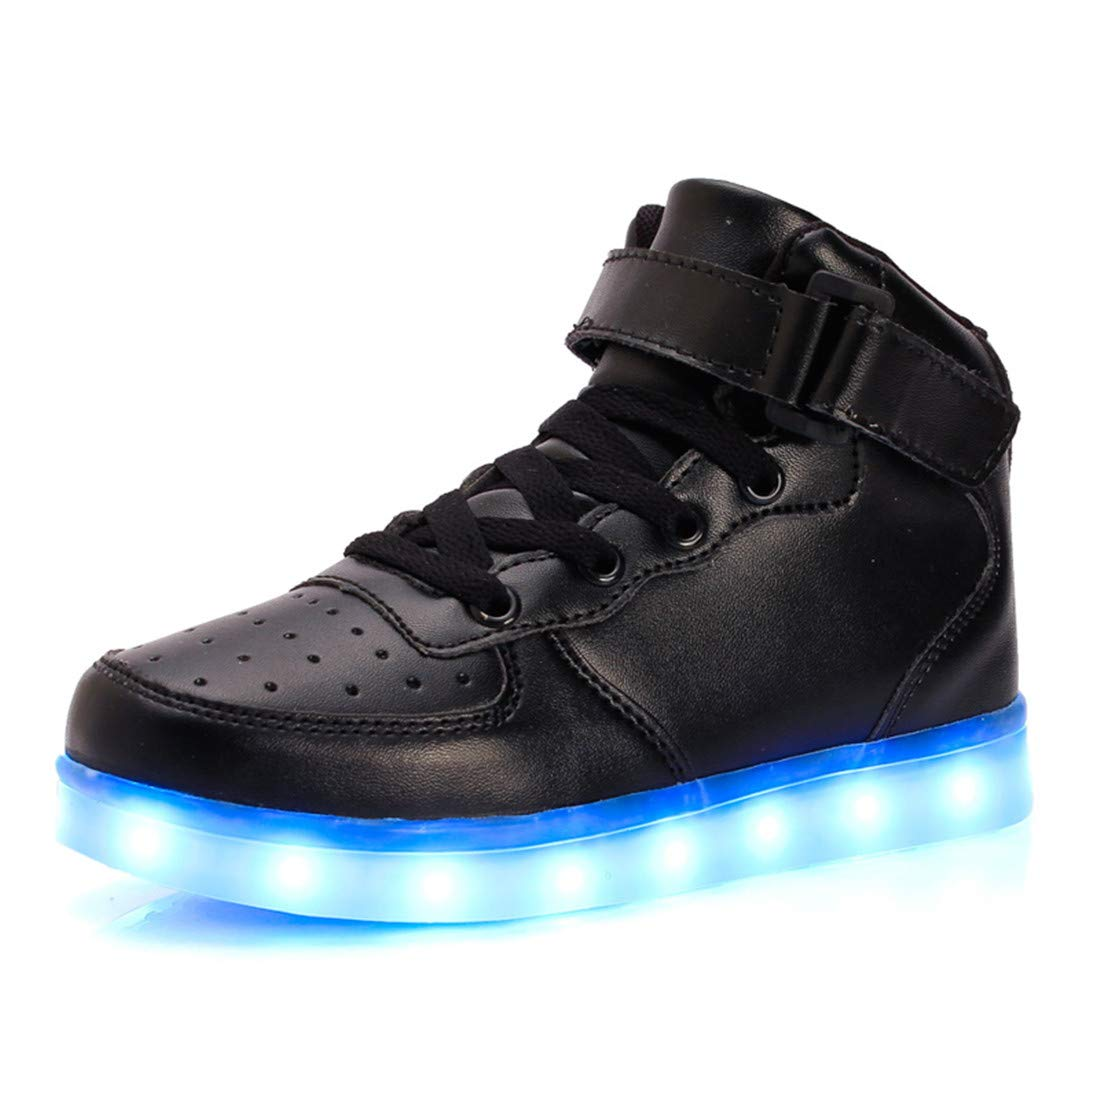 Children Glowing Boys Girls Casual Shoes Flats Breathable Sneakers Black